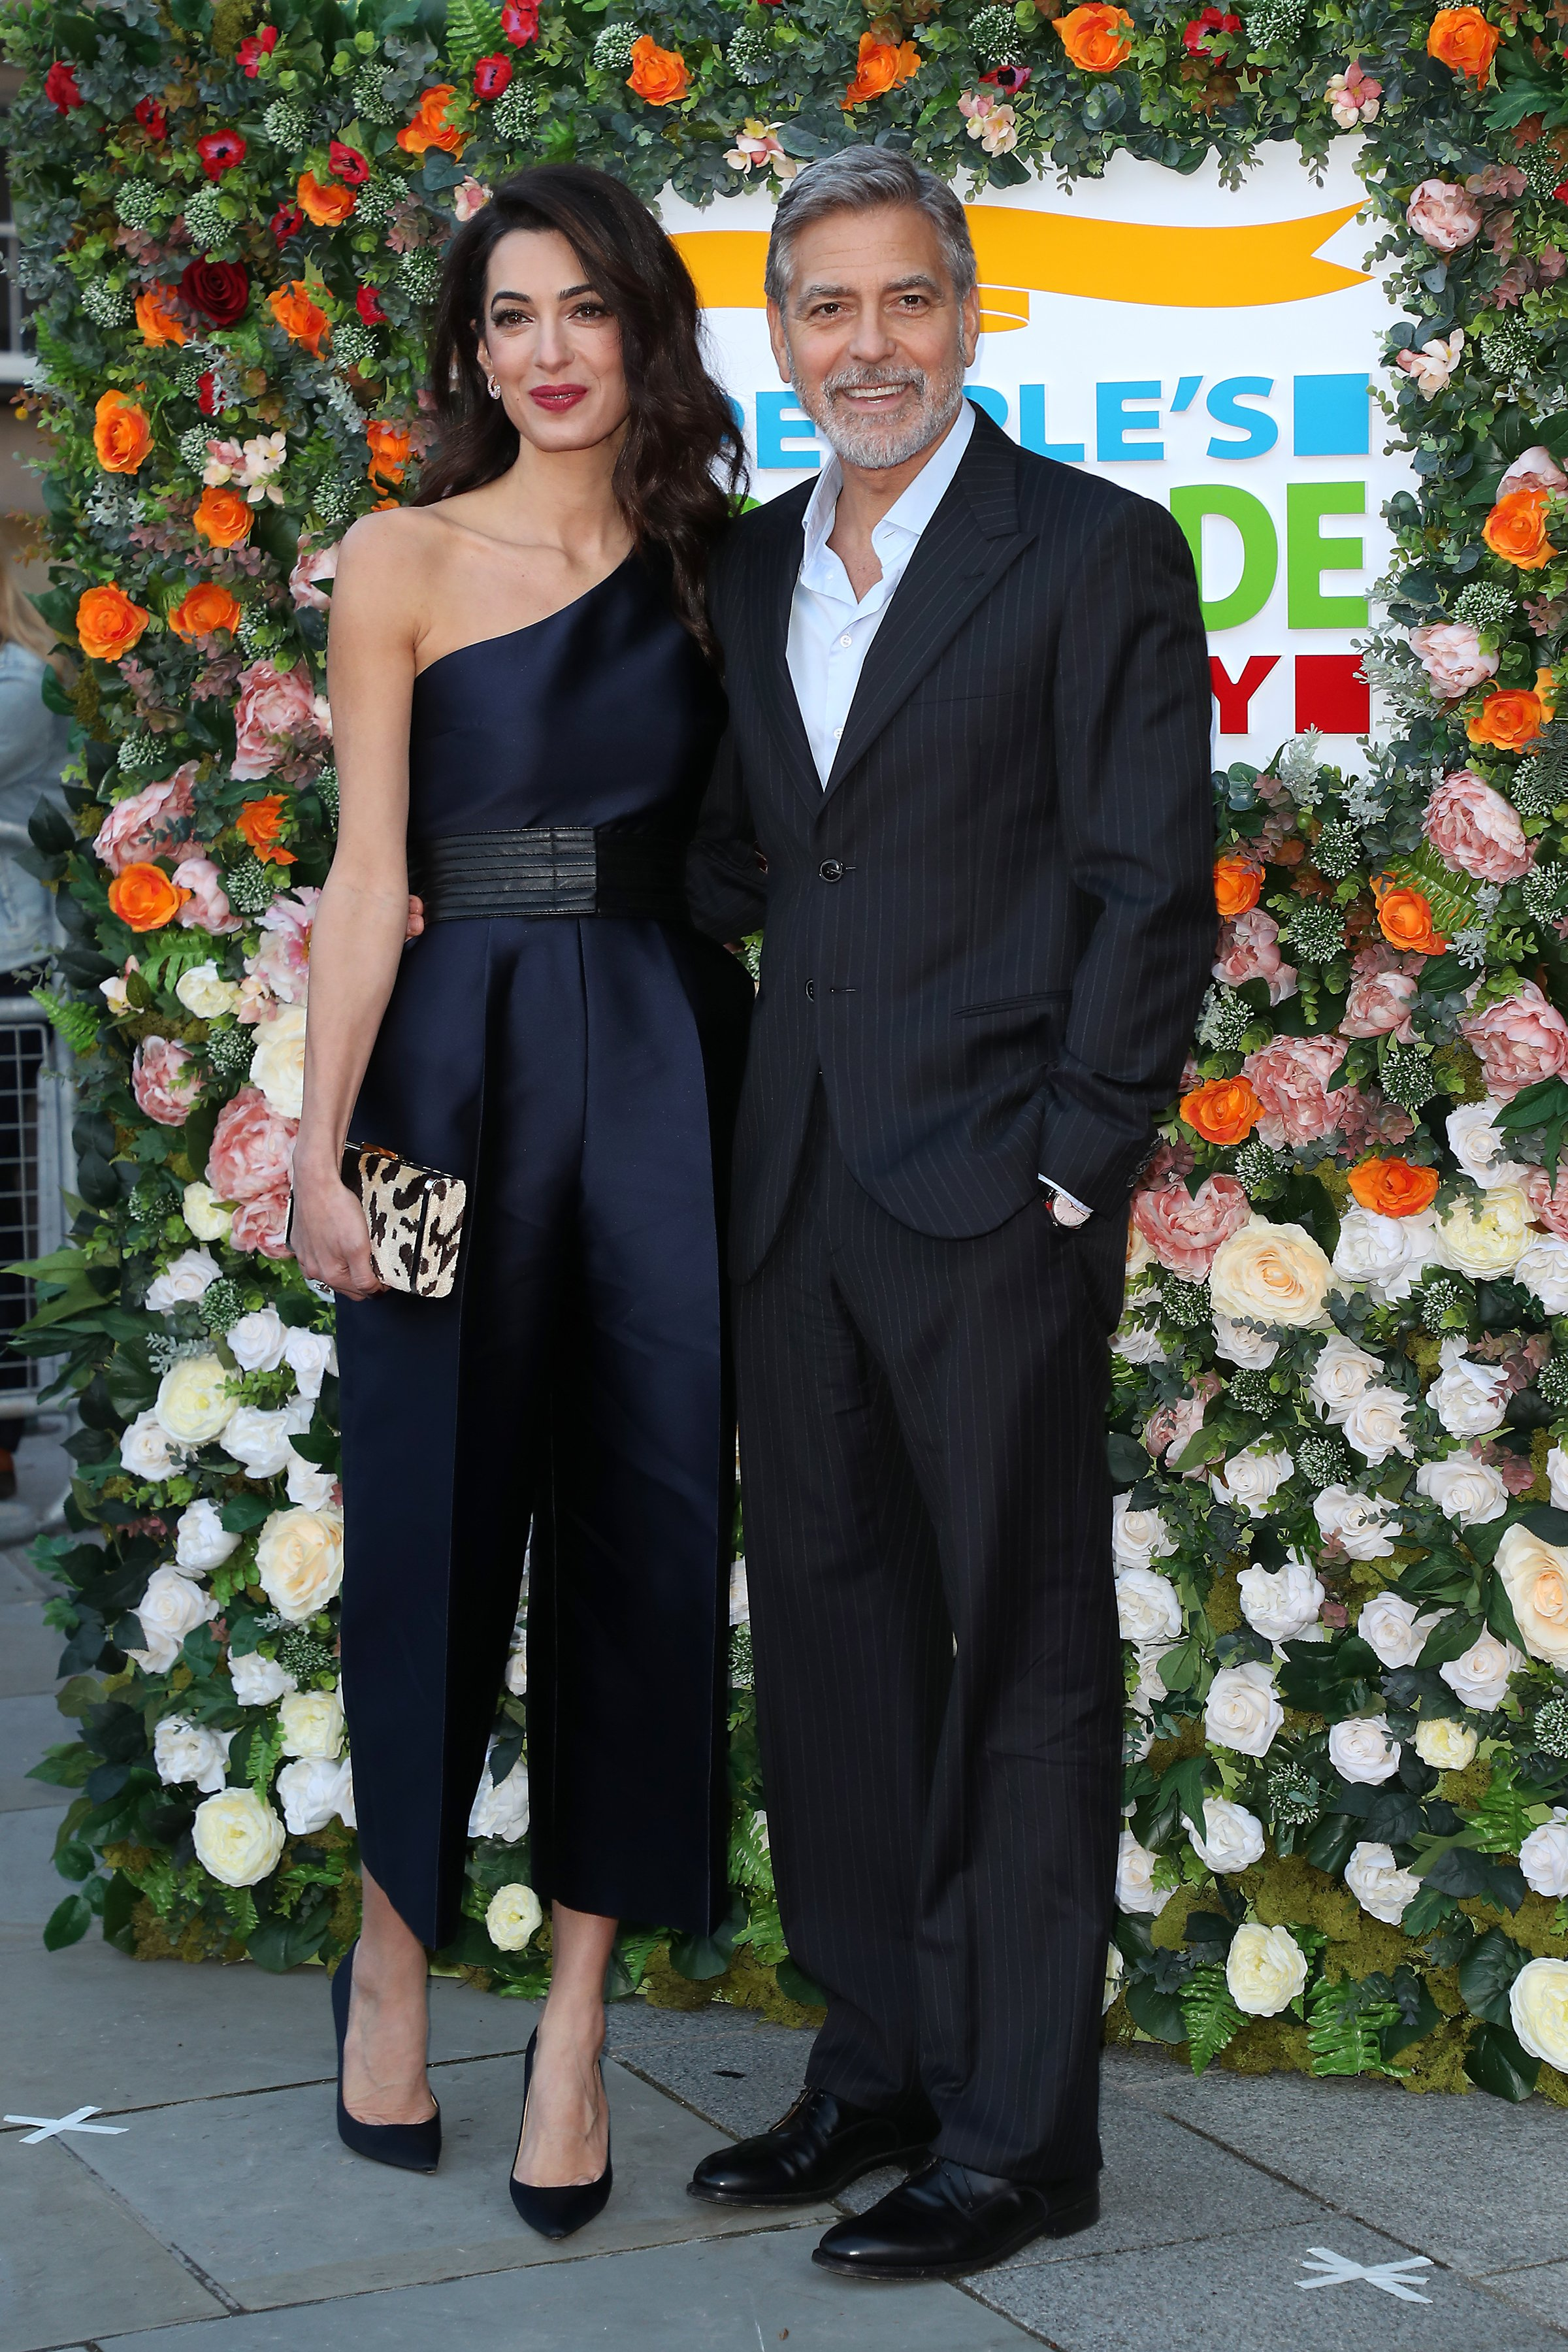 George Clooney and Amal Clooney attend the People's Postcode Lottery Charity Gala at McEwan Hall on March 14, 2019 in Edinburgh, Scotland. | Source: Getty Images